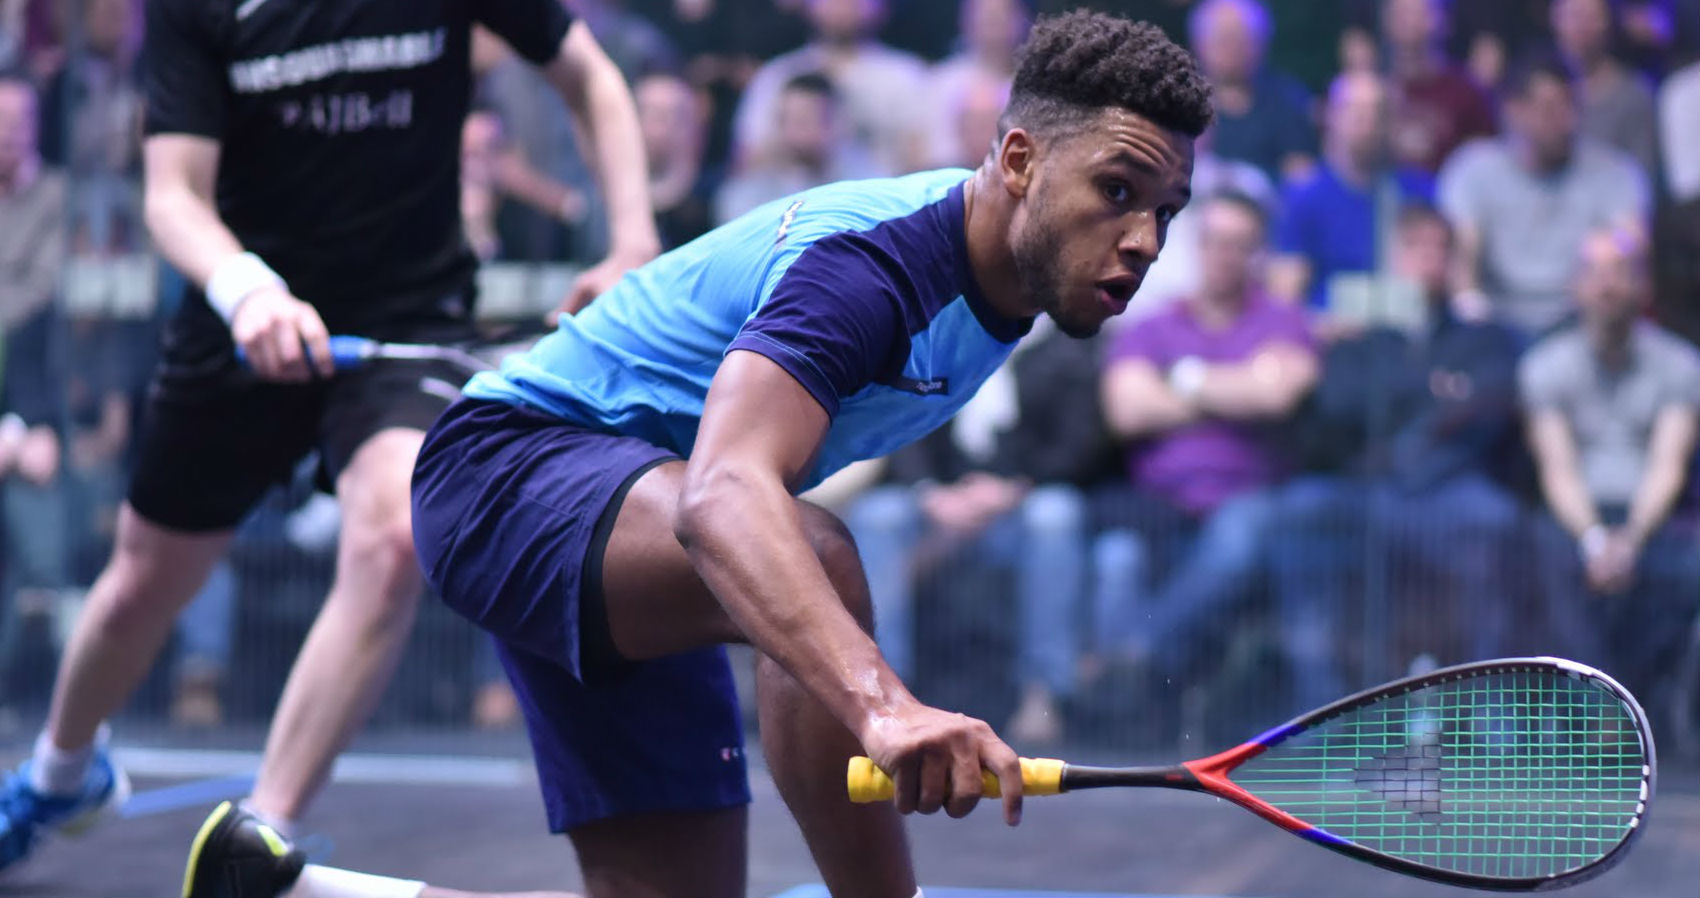 Richie Fallows at Nationals